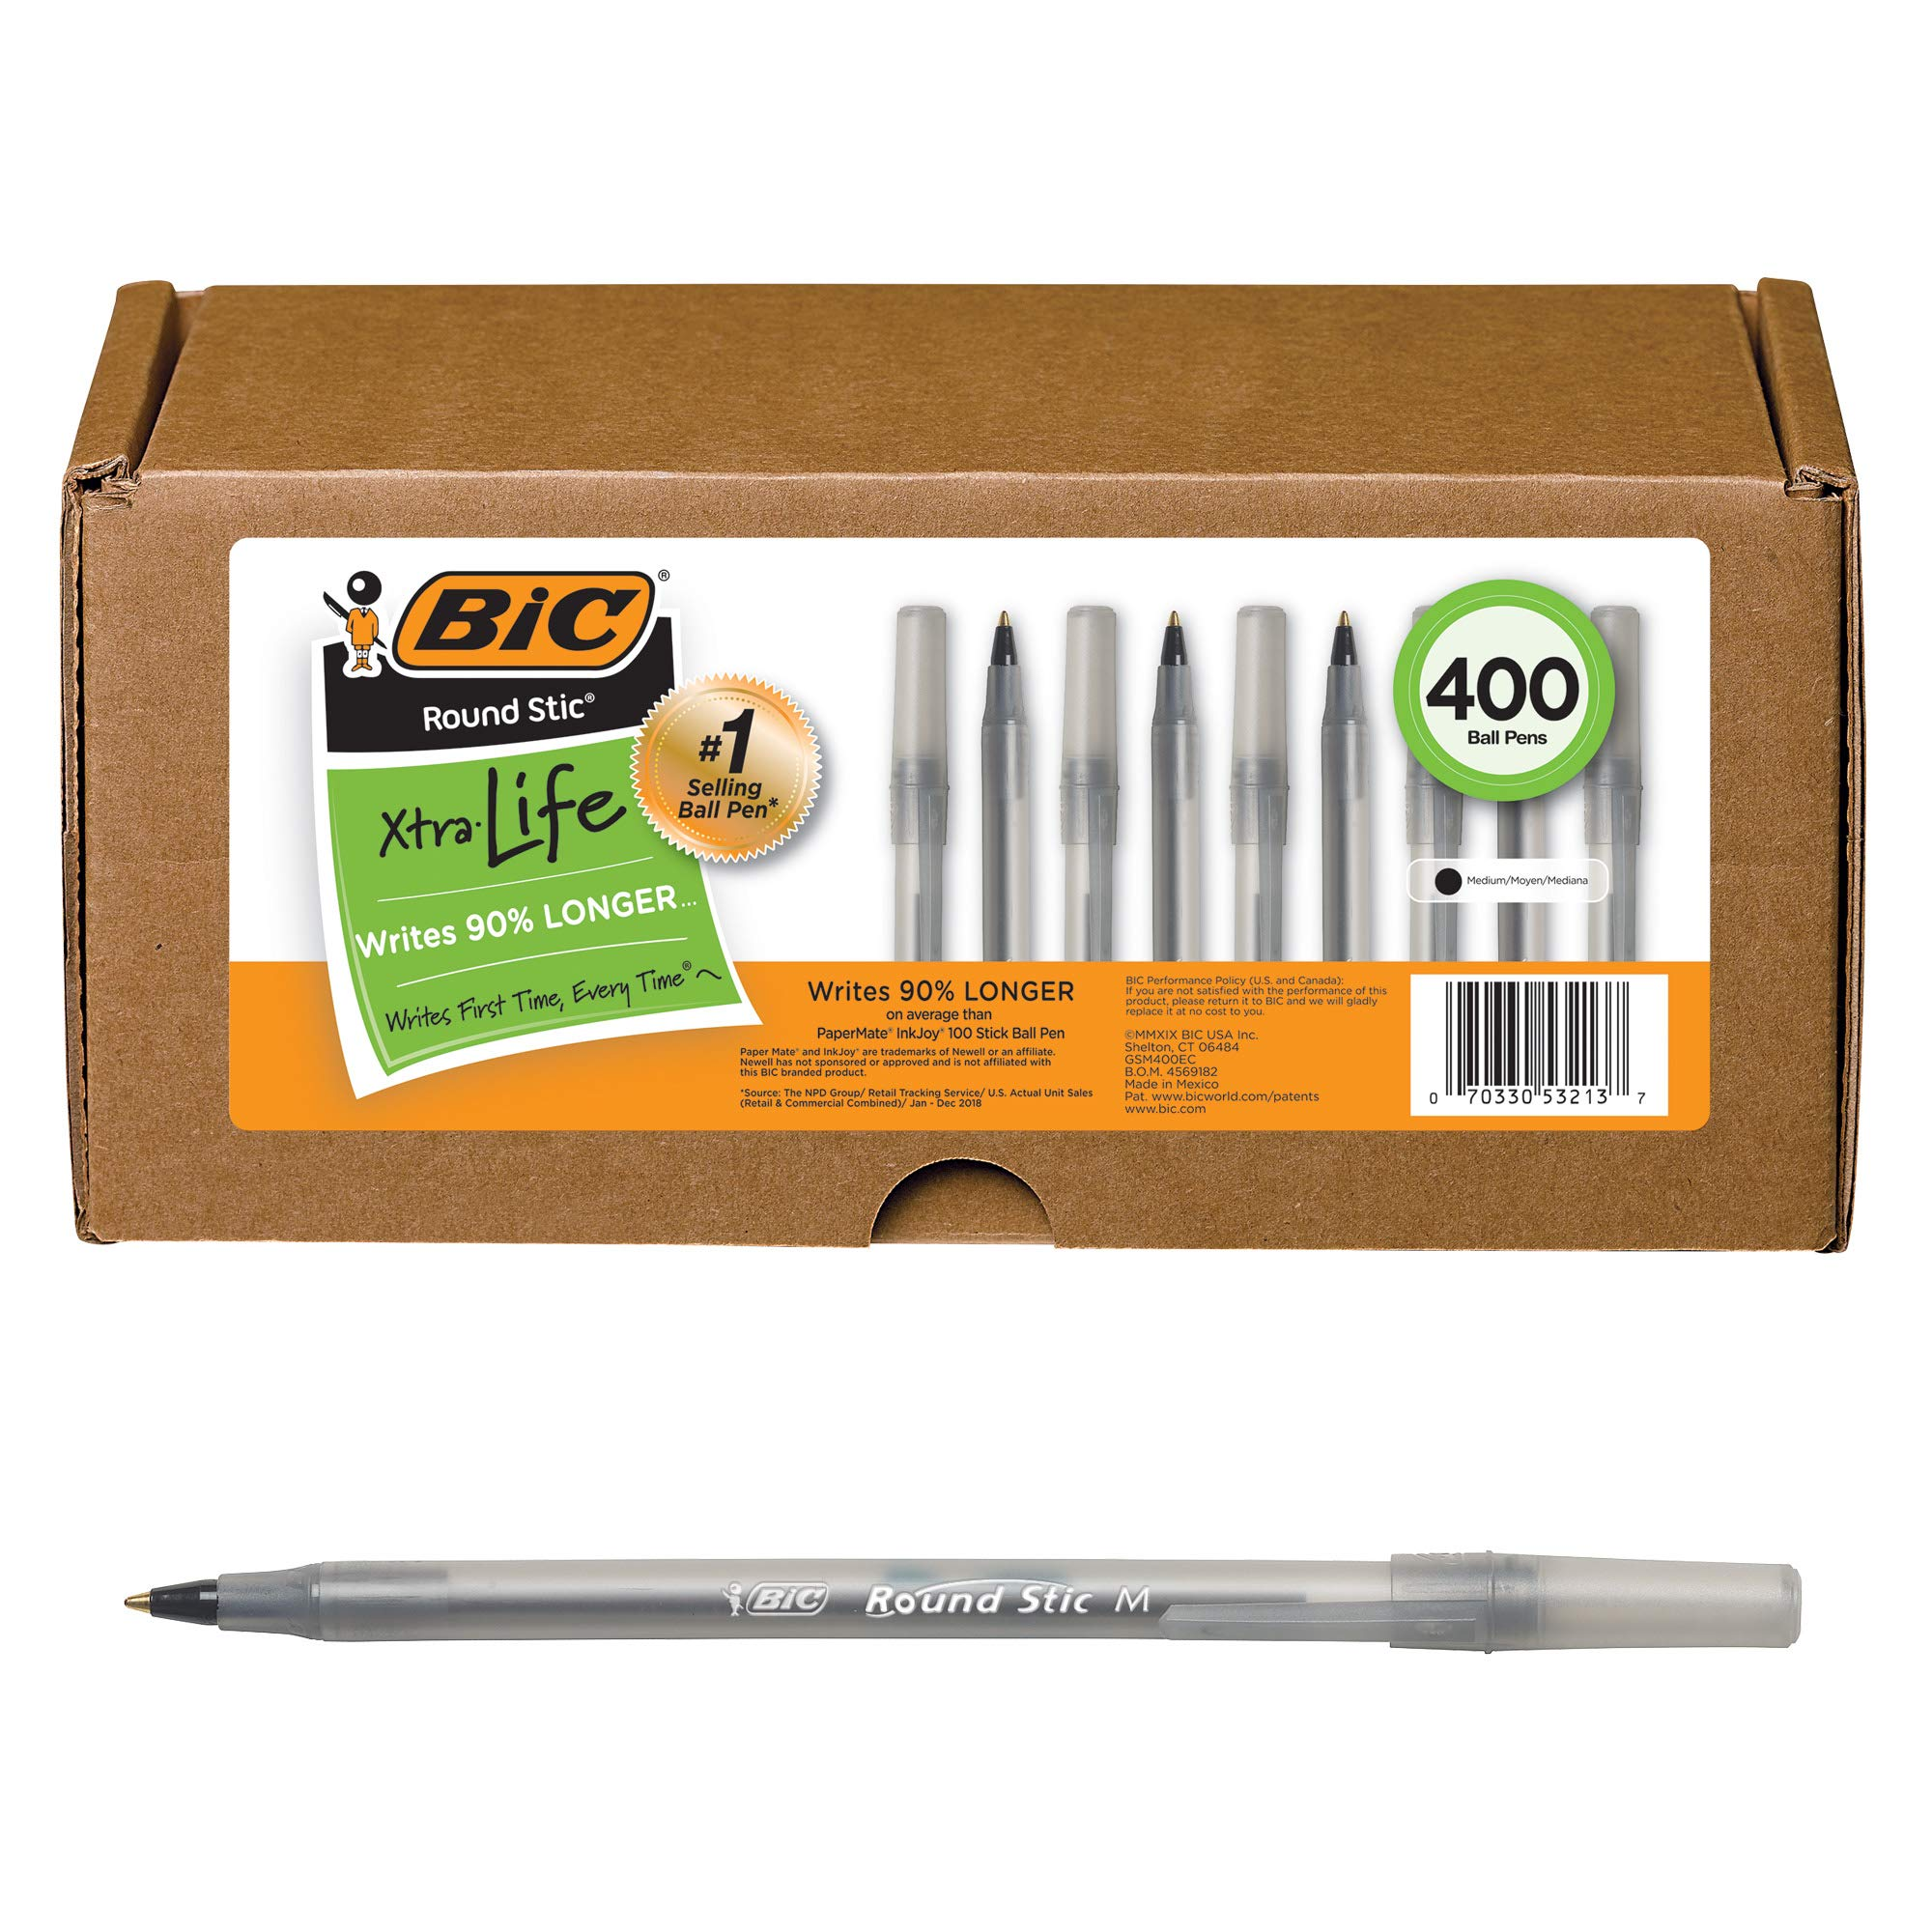 BIC Round Stic Xtra Life Ball Pen, Black, 400 count by BIC